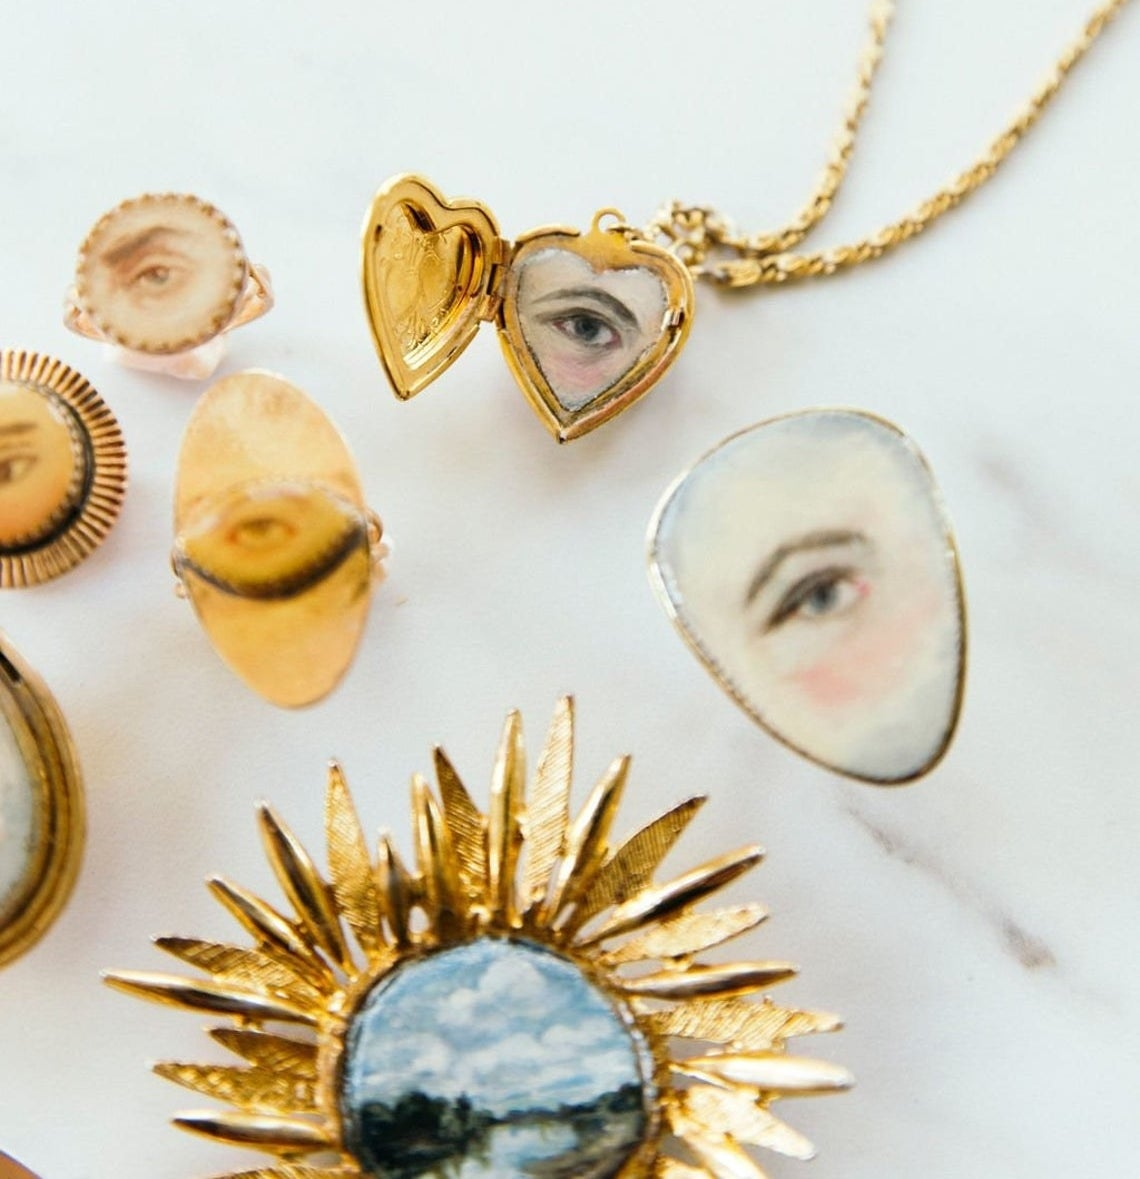 Several tiny gold necklaces, rings, and pendants with painted scenes and eyes